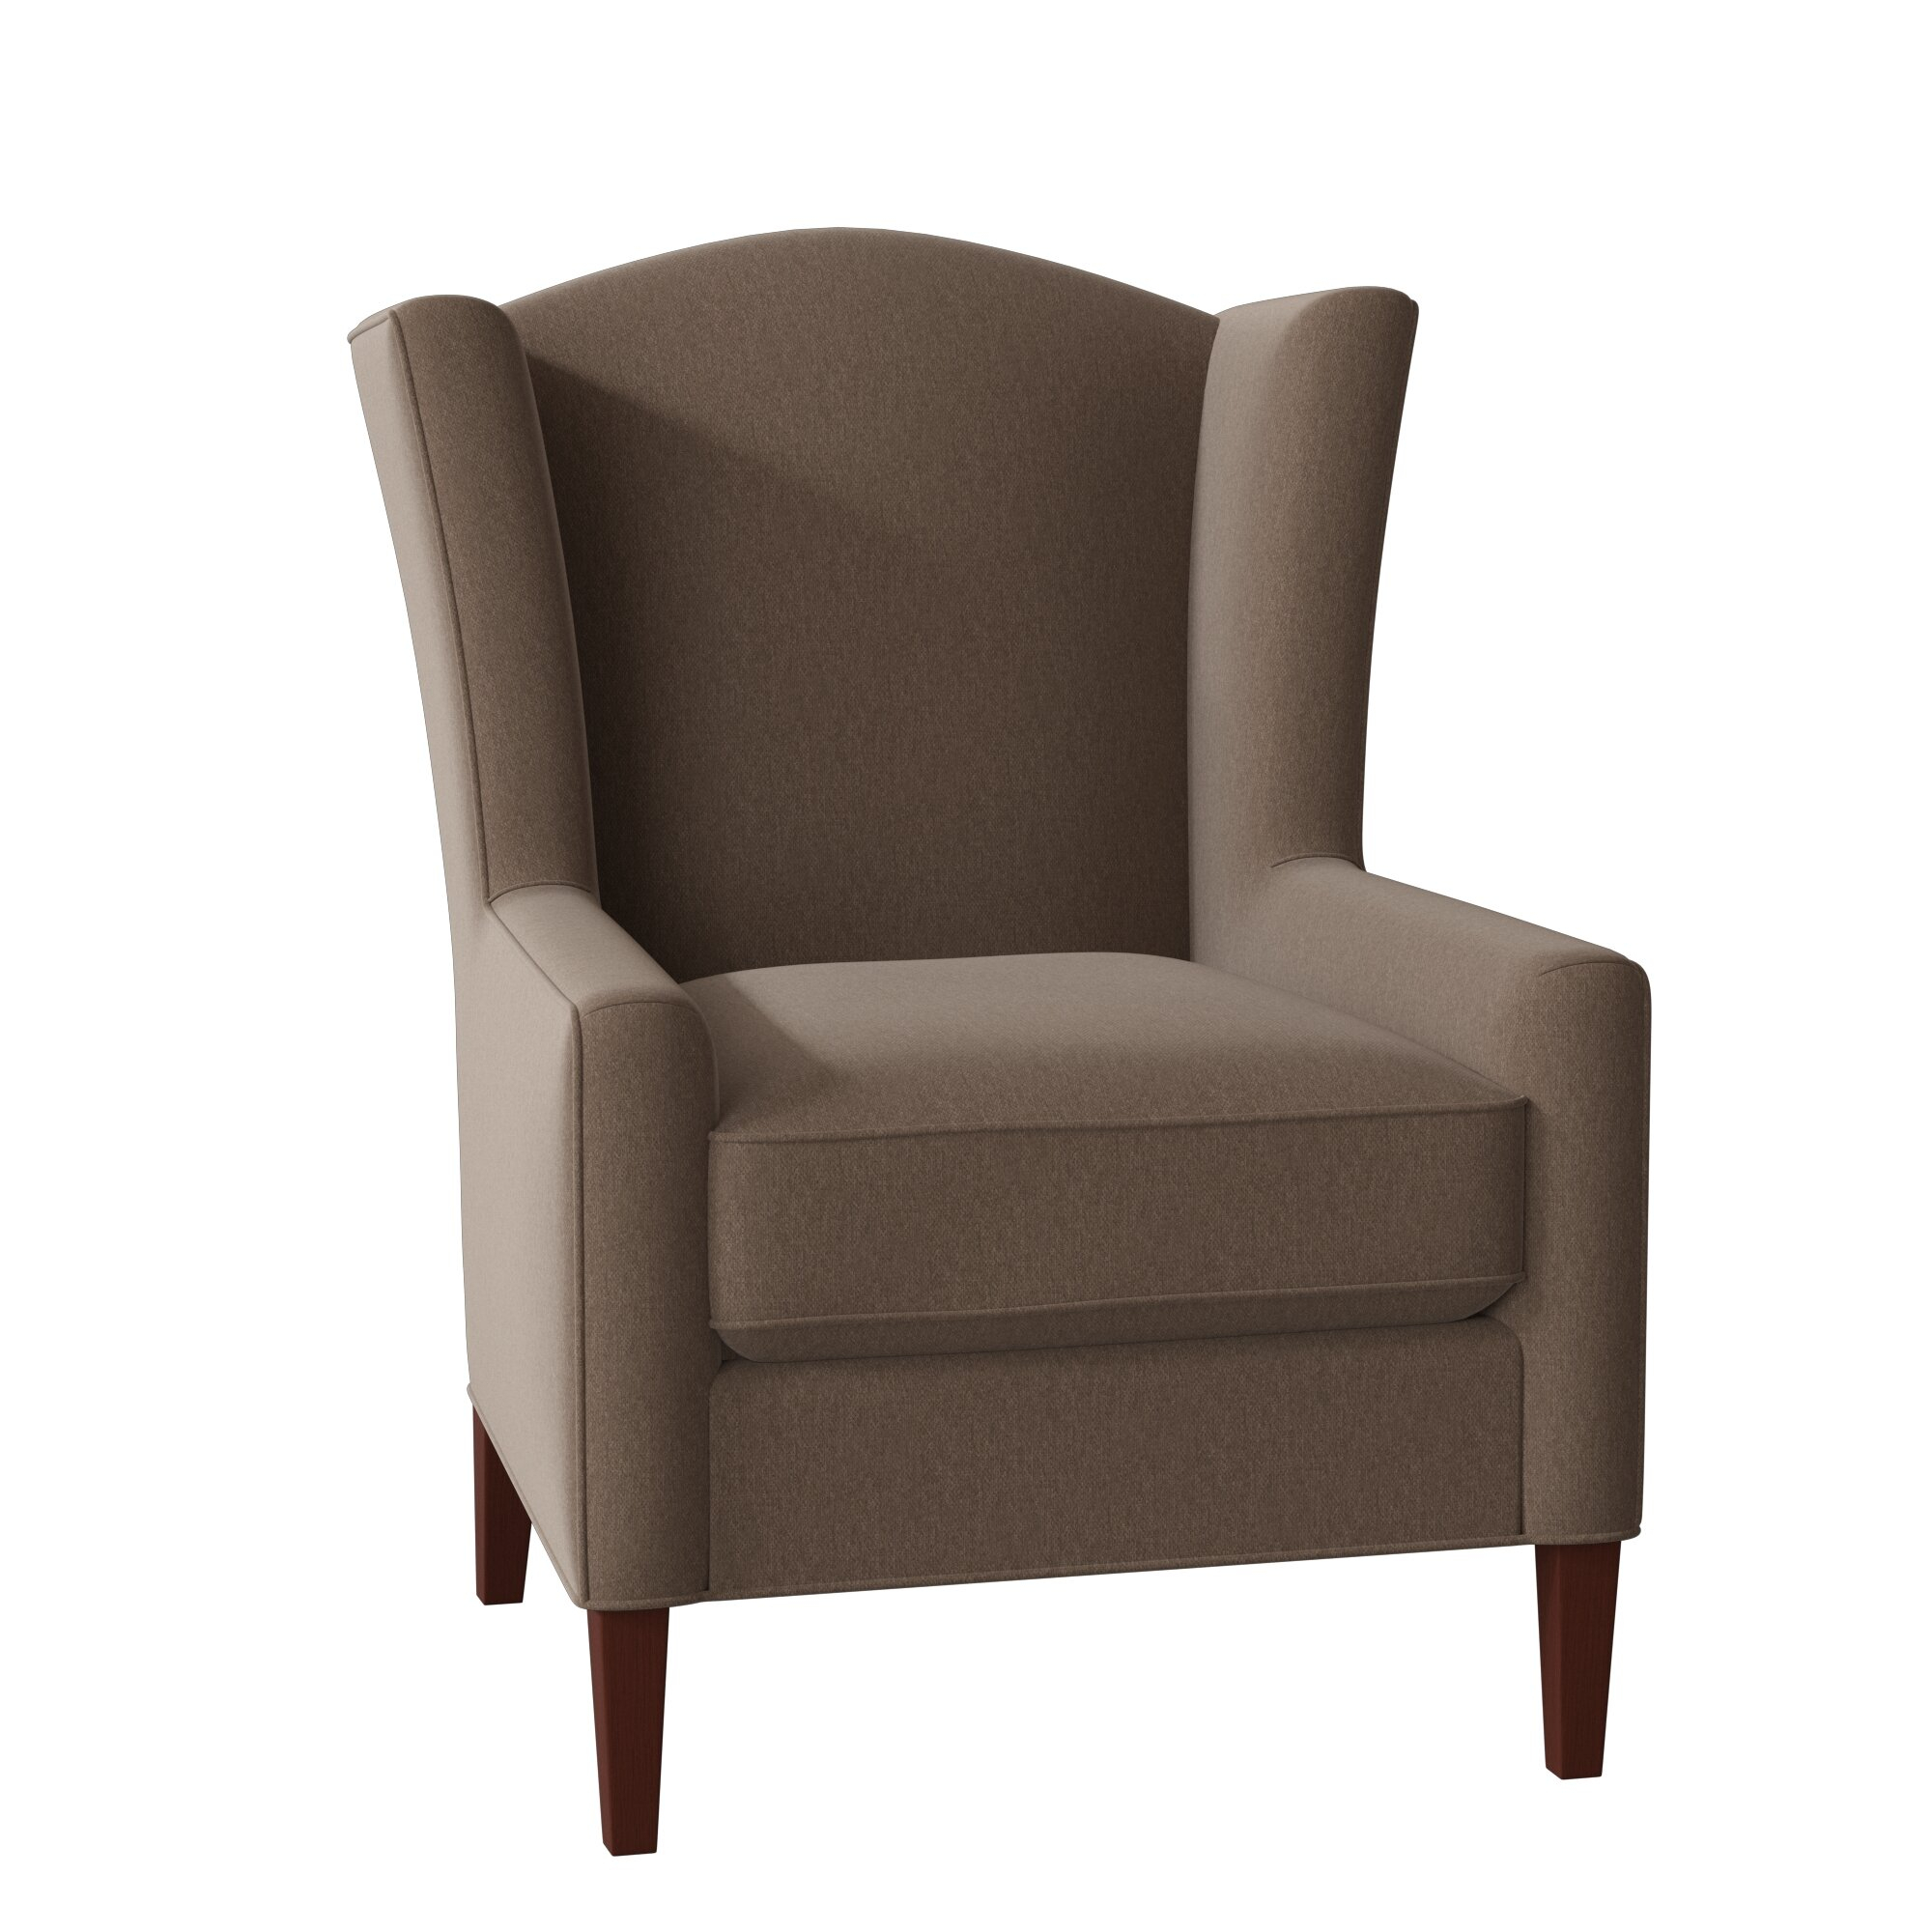 Imperial Wingback Chair With Regard To Sweetwater Wingback Chairs (View 5 of 15)